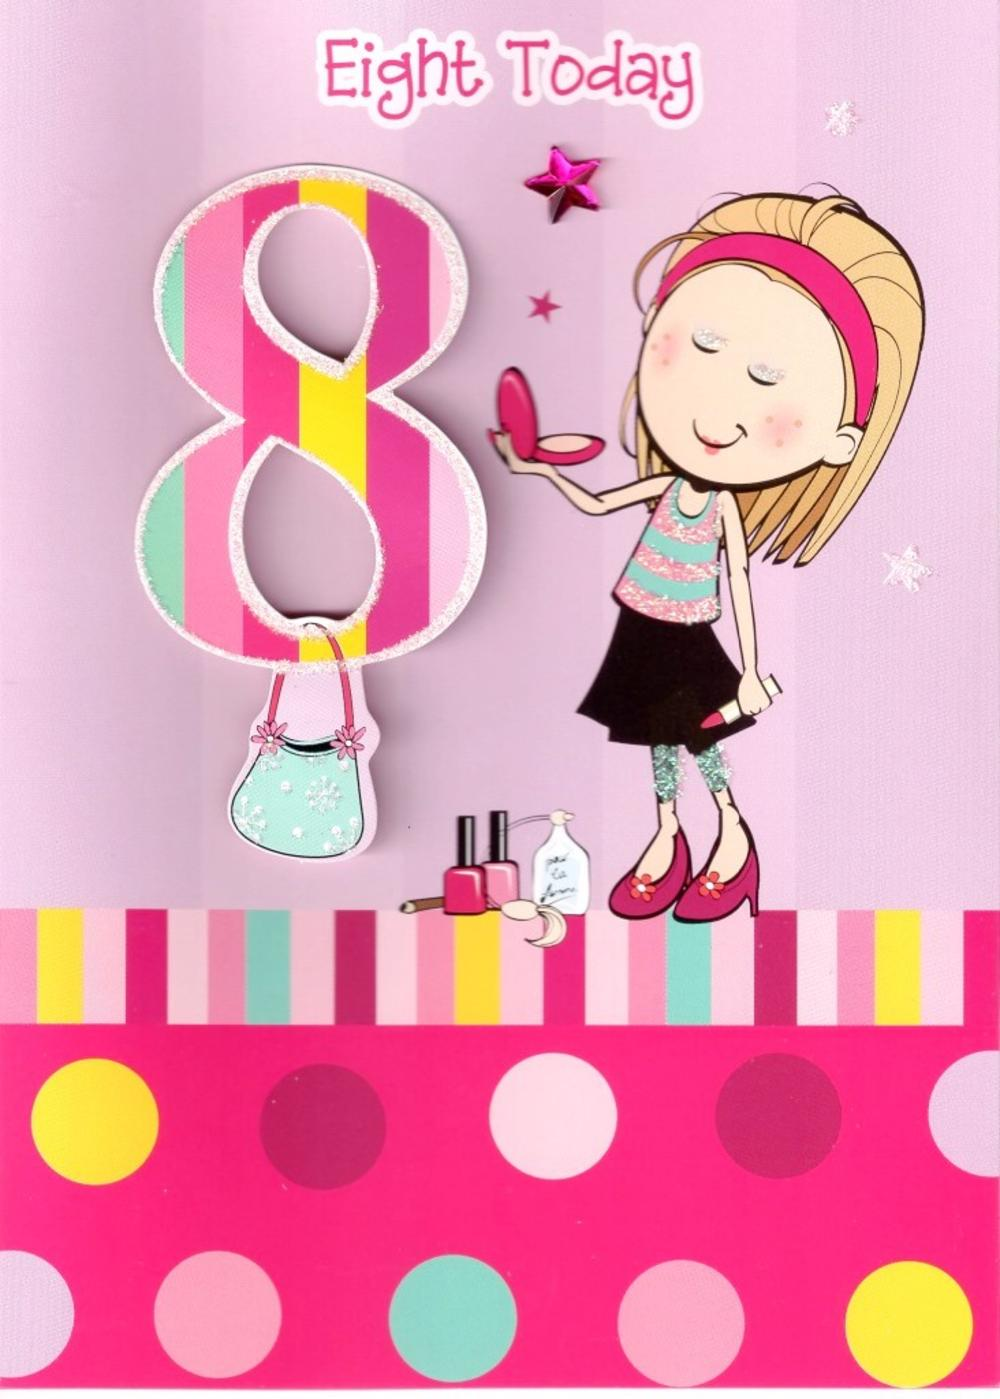 Girls 8th Birthday 8 Eight Today Card Cards Love Kates